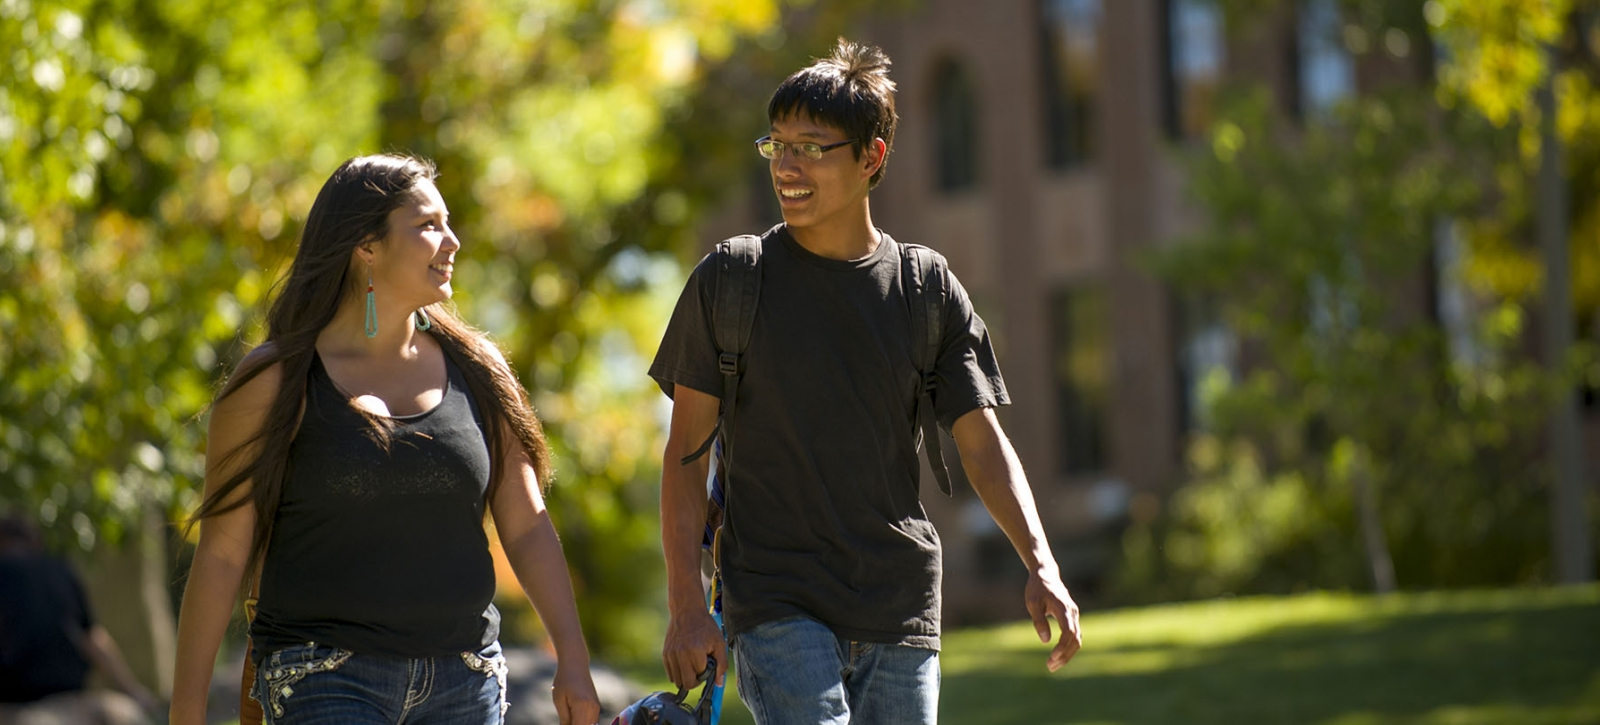 Students walking across campus.